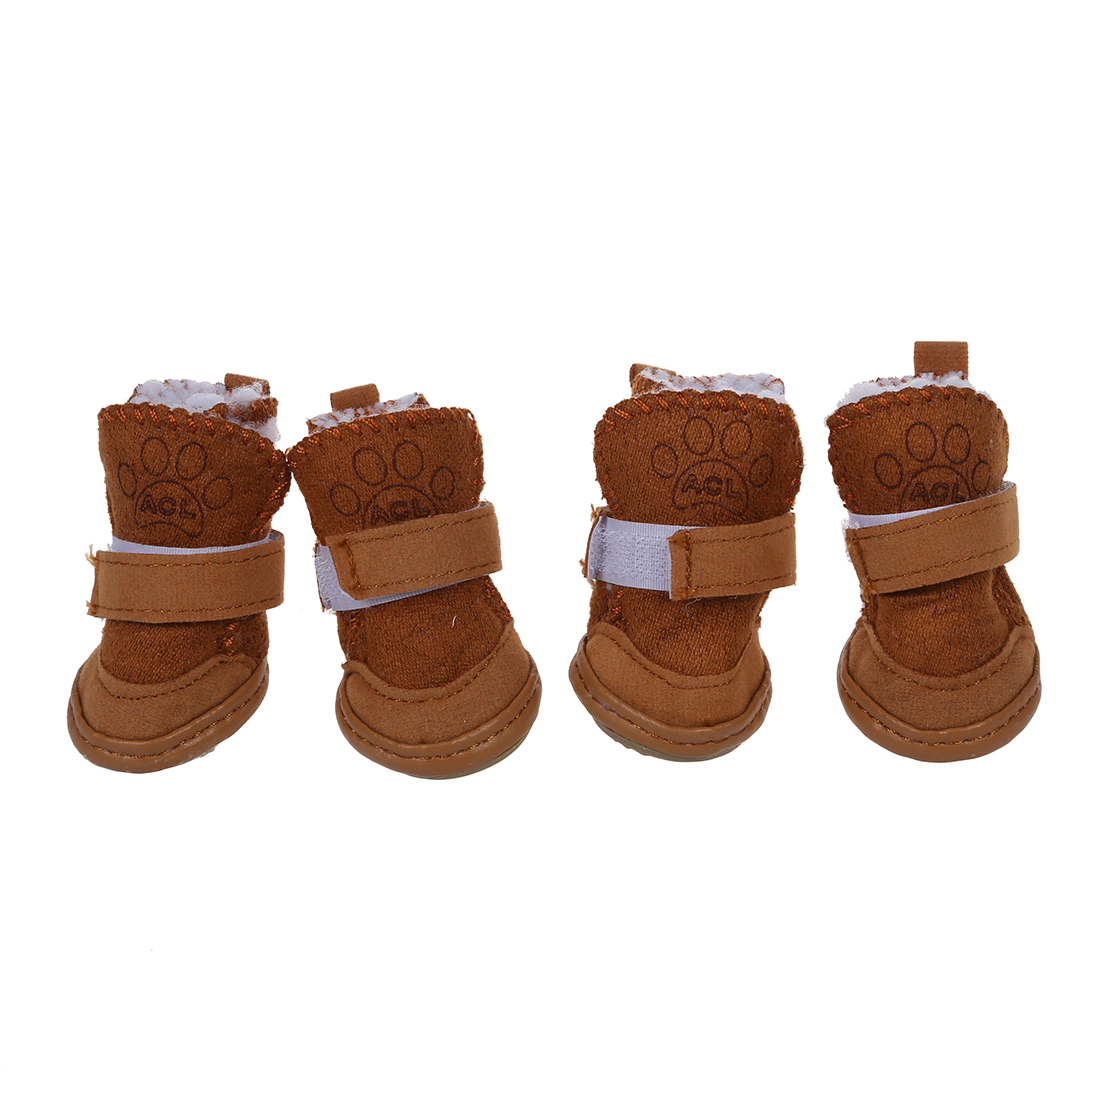 HOT Pet Dog Snow Shoes Warm Winter Boots Protective Booties Set of 4 Coffee Size 1 ...